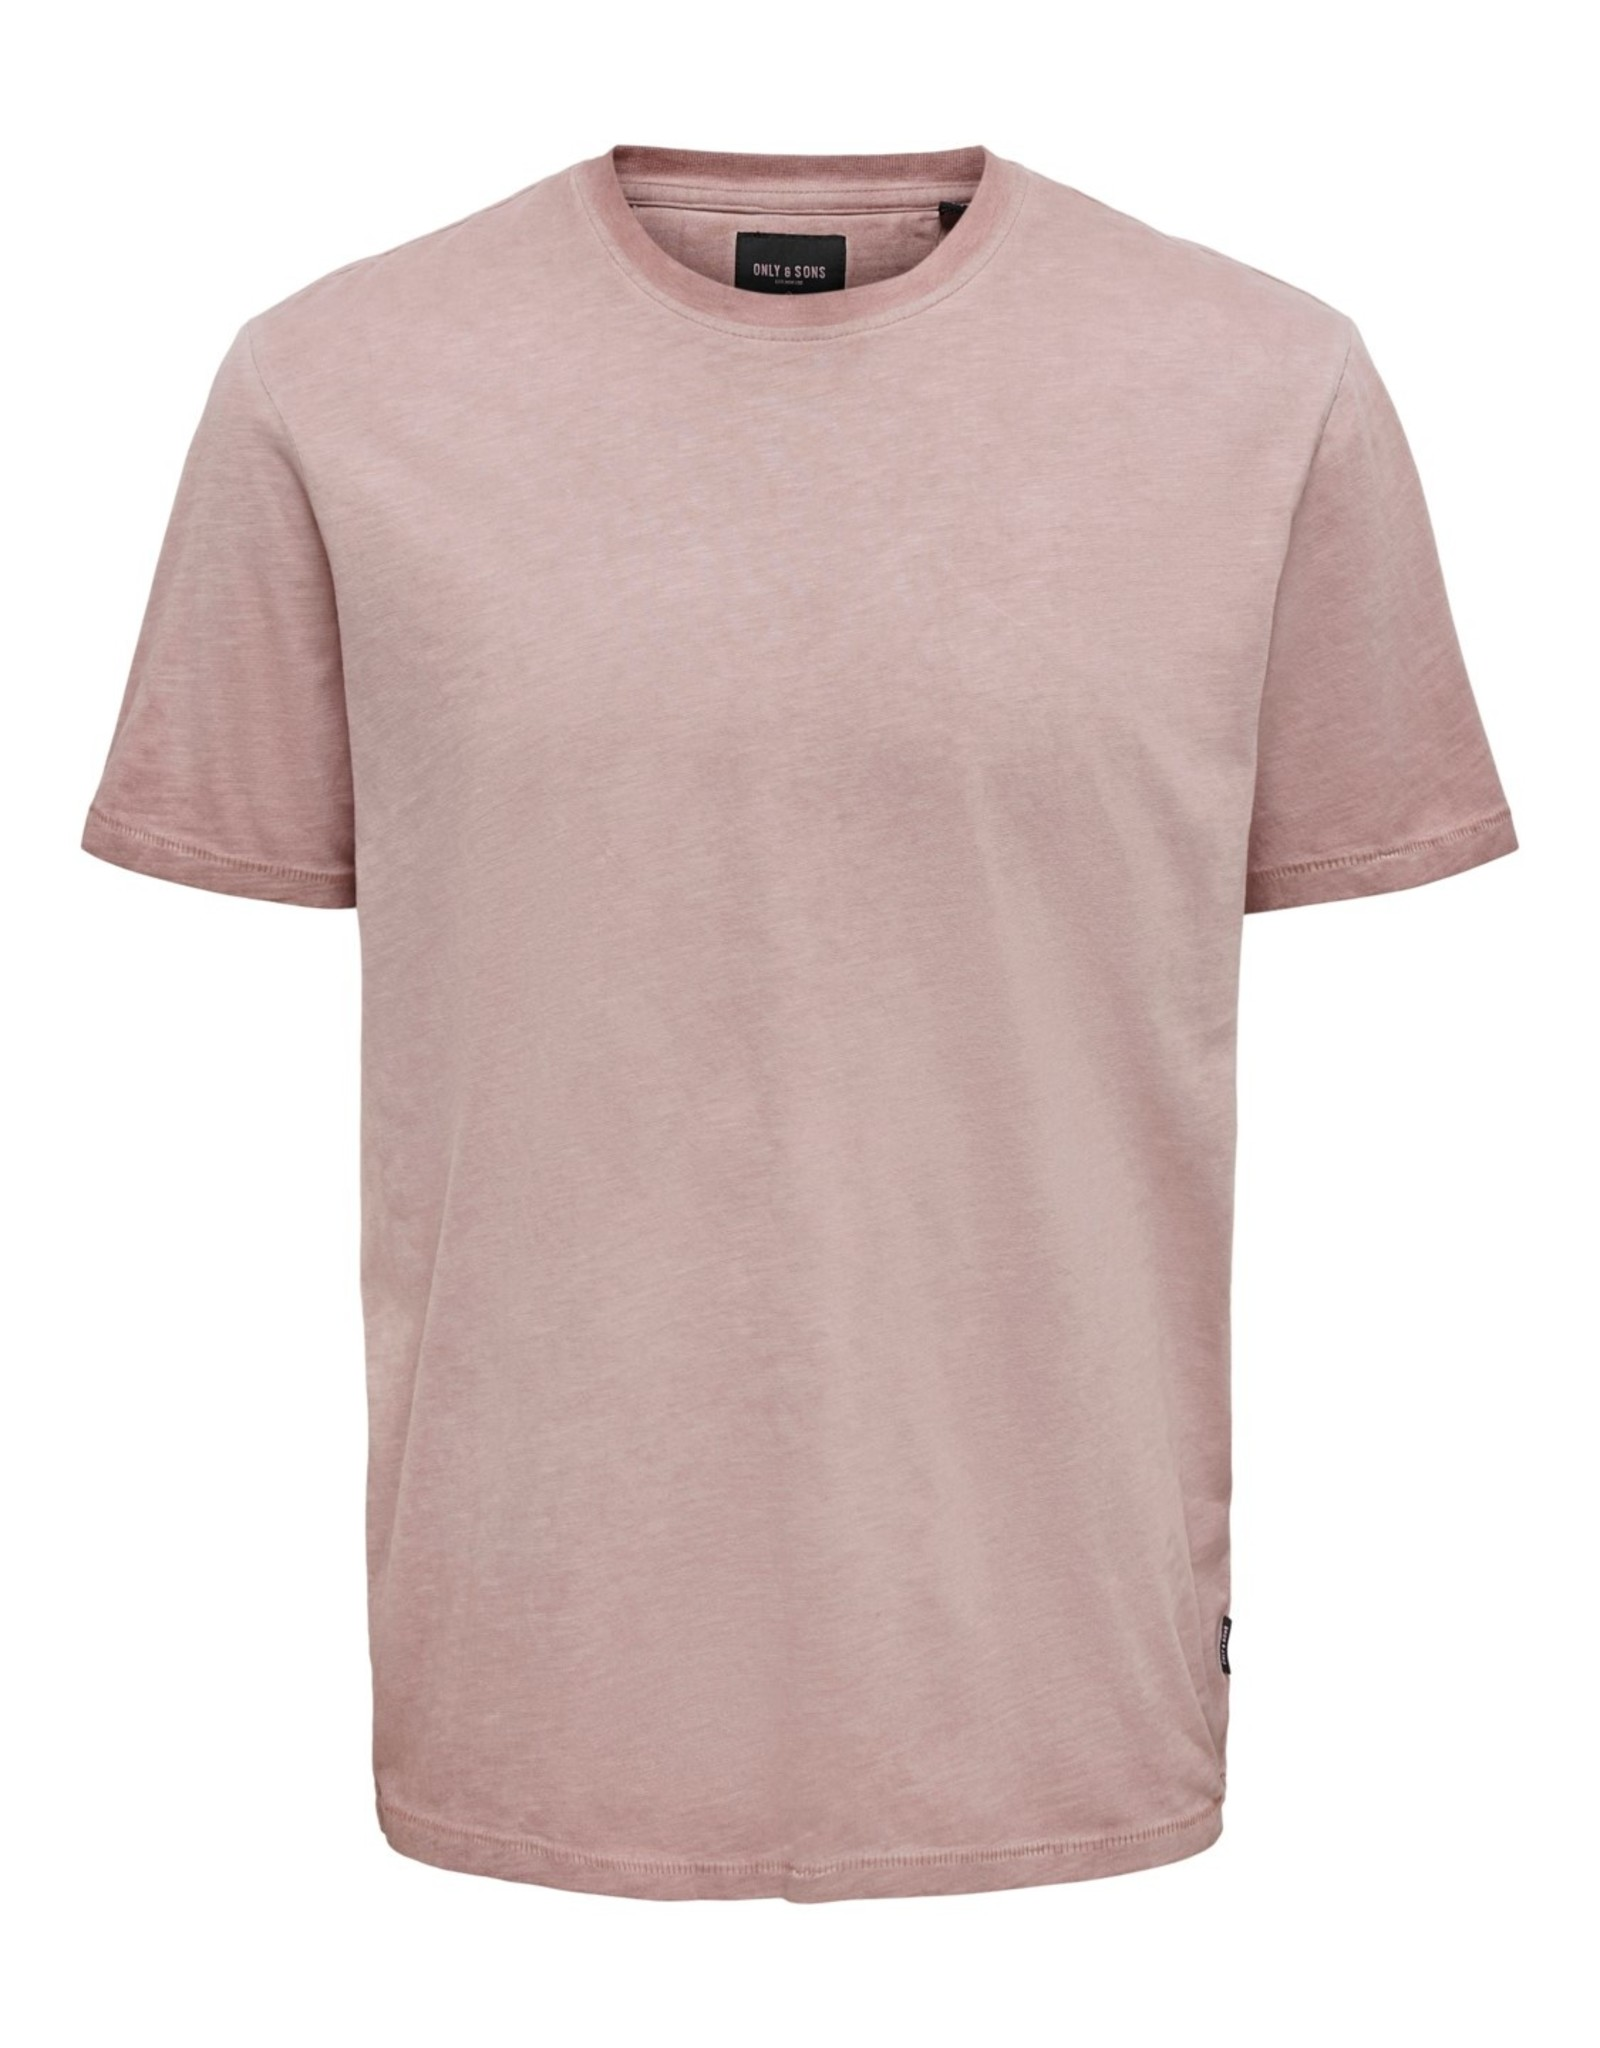 Only and Sons Millenium Washed Tee